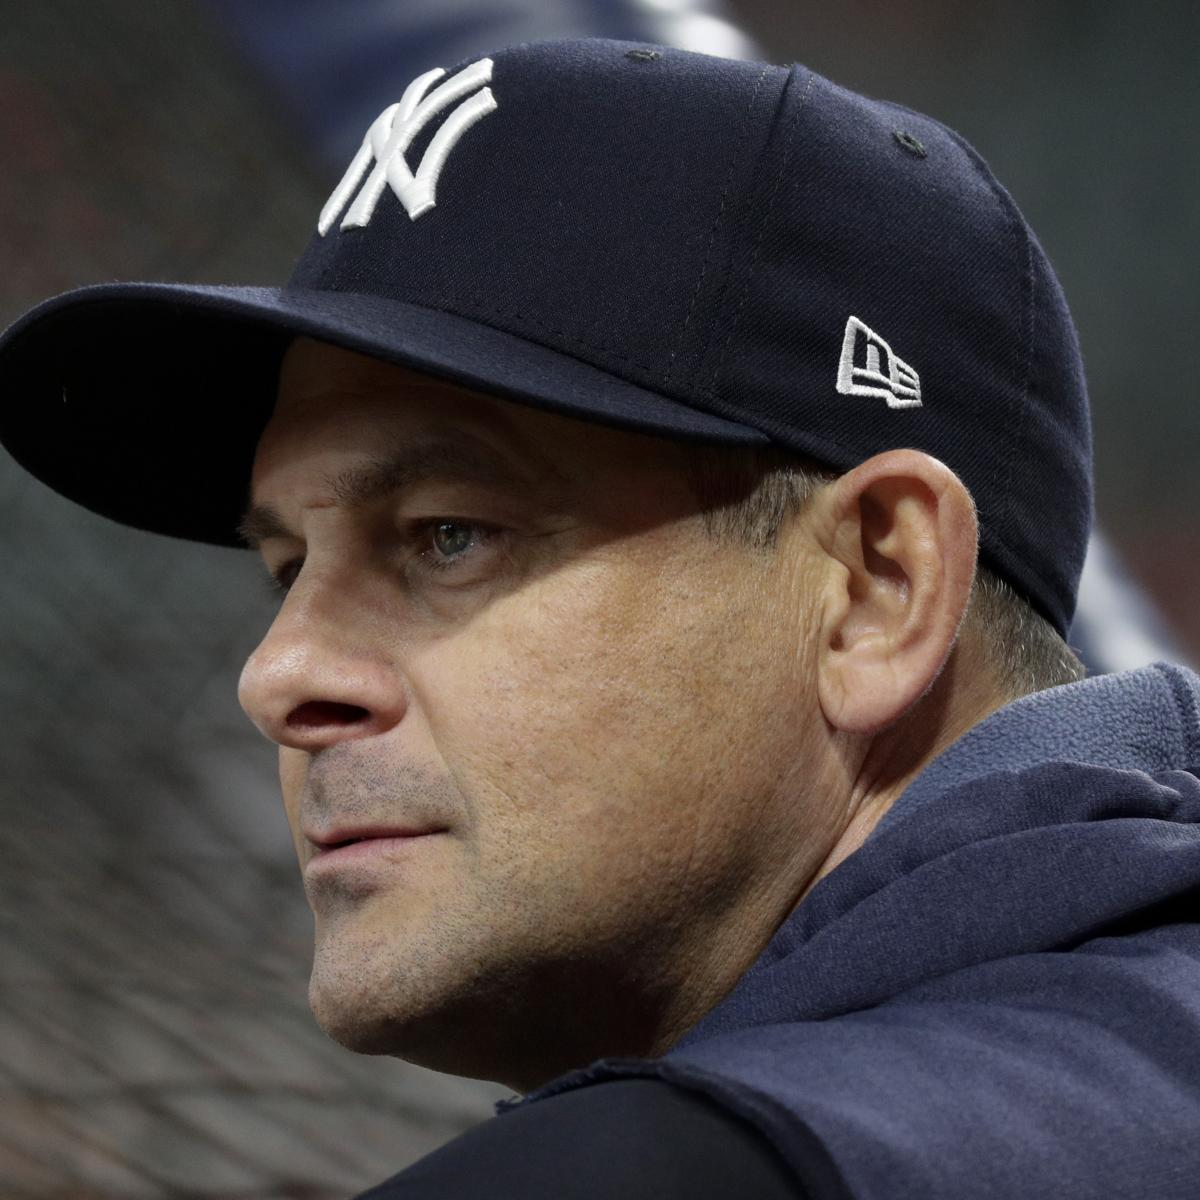 Aaron Boone 2.0: Yankees Manager Faces New Set of Challenges for 2020 Season